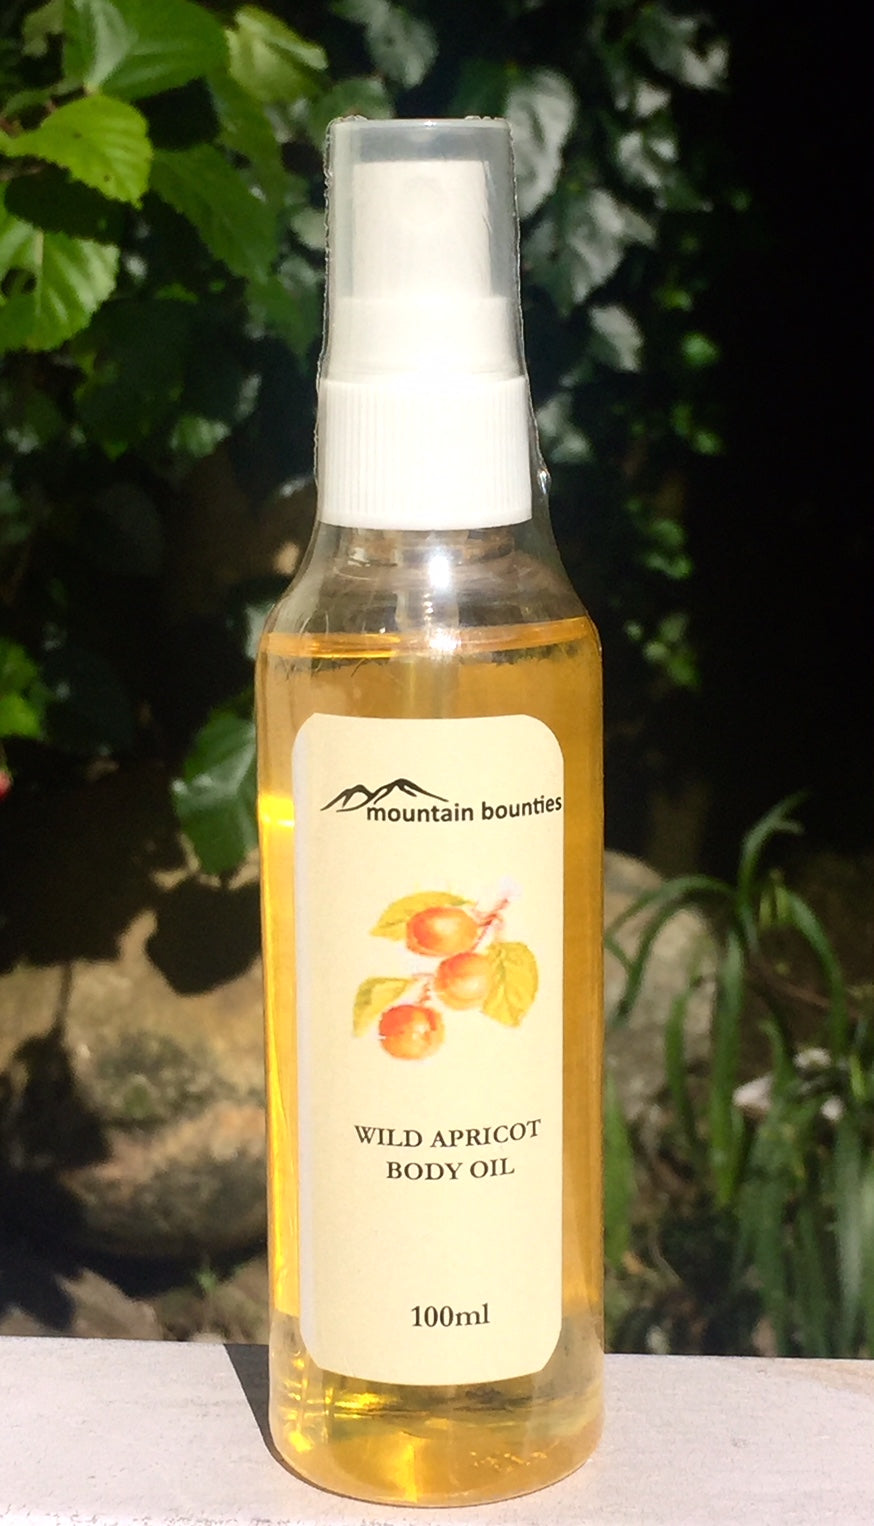 Wild Apricot Body Oil, 100% natural, handmade, Natural oils, Skin Care, Himachal Oils, Himalayan Salt, Mountain Bounties, Himalayan people Care, Essential oils, Cold Pressed oils, Moisturising oils, Moisturising creams